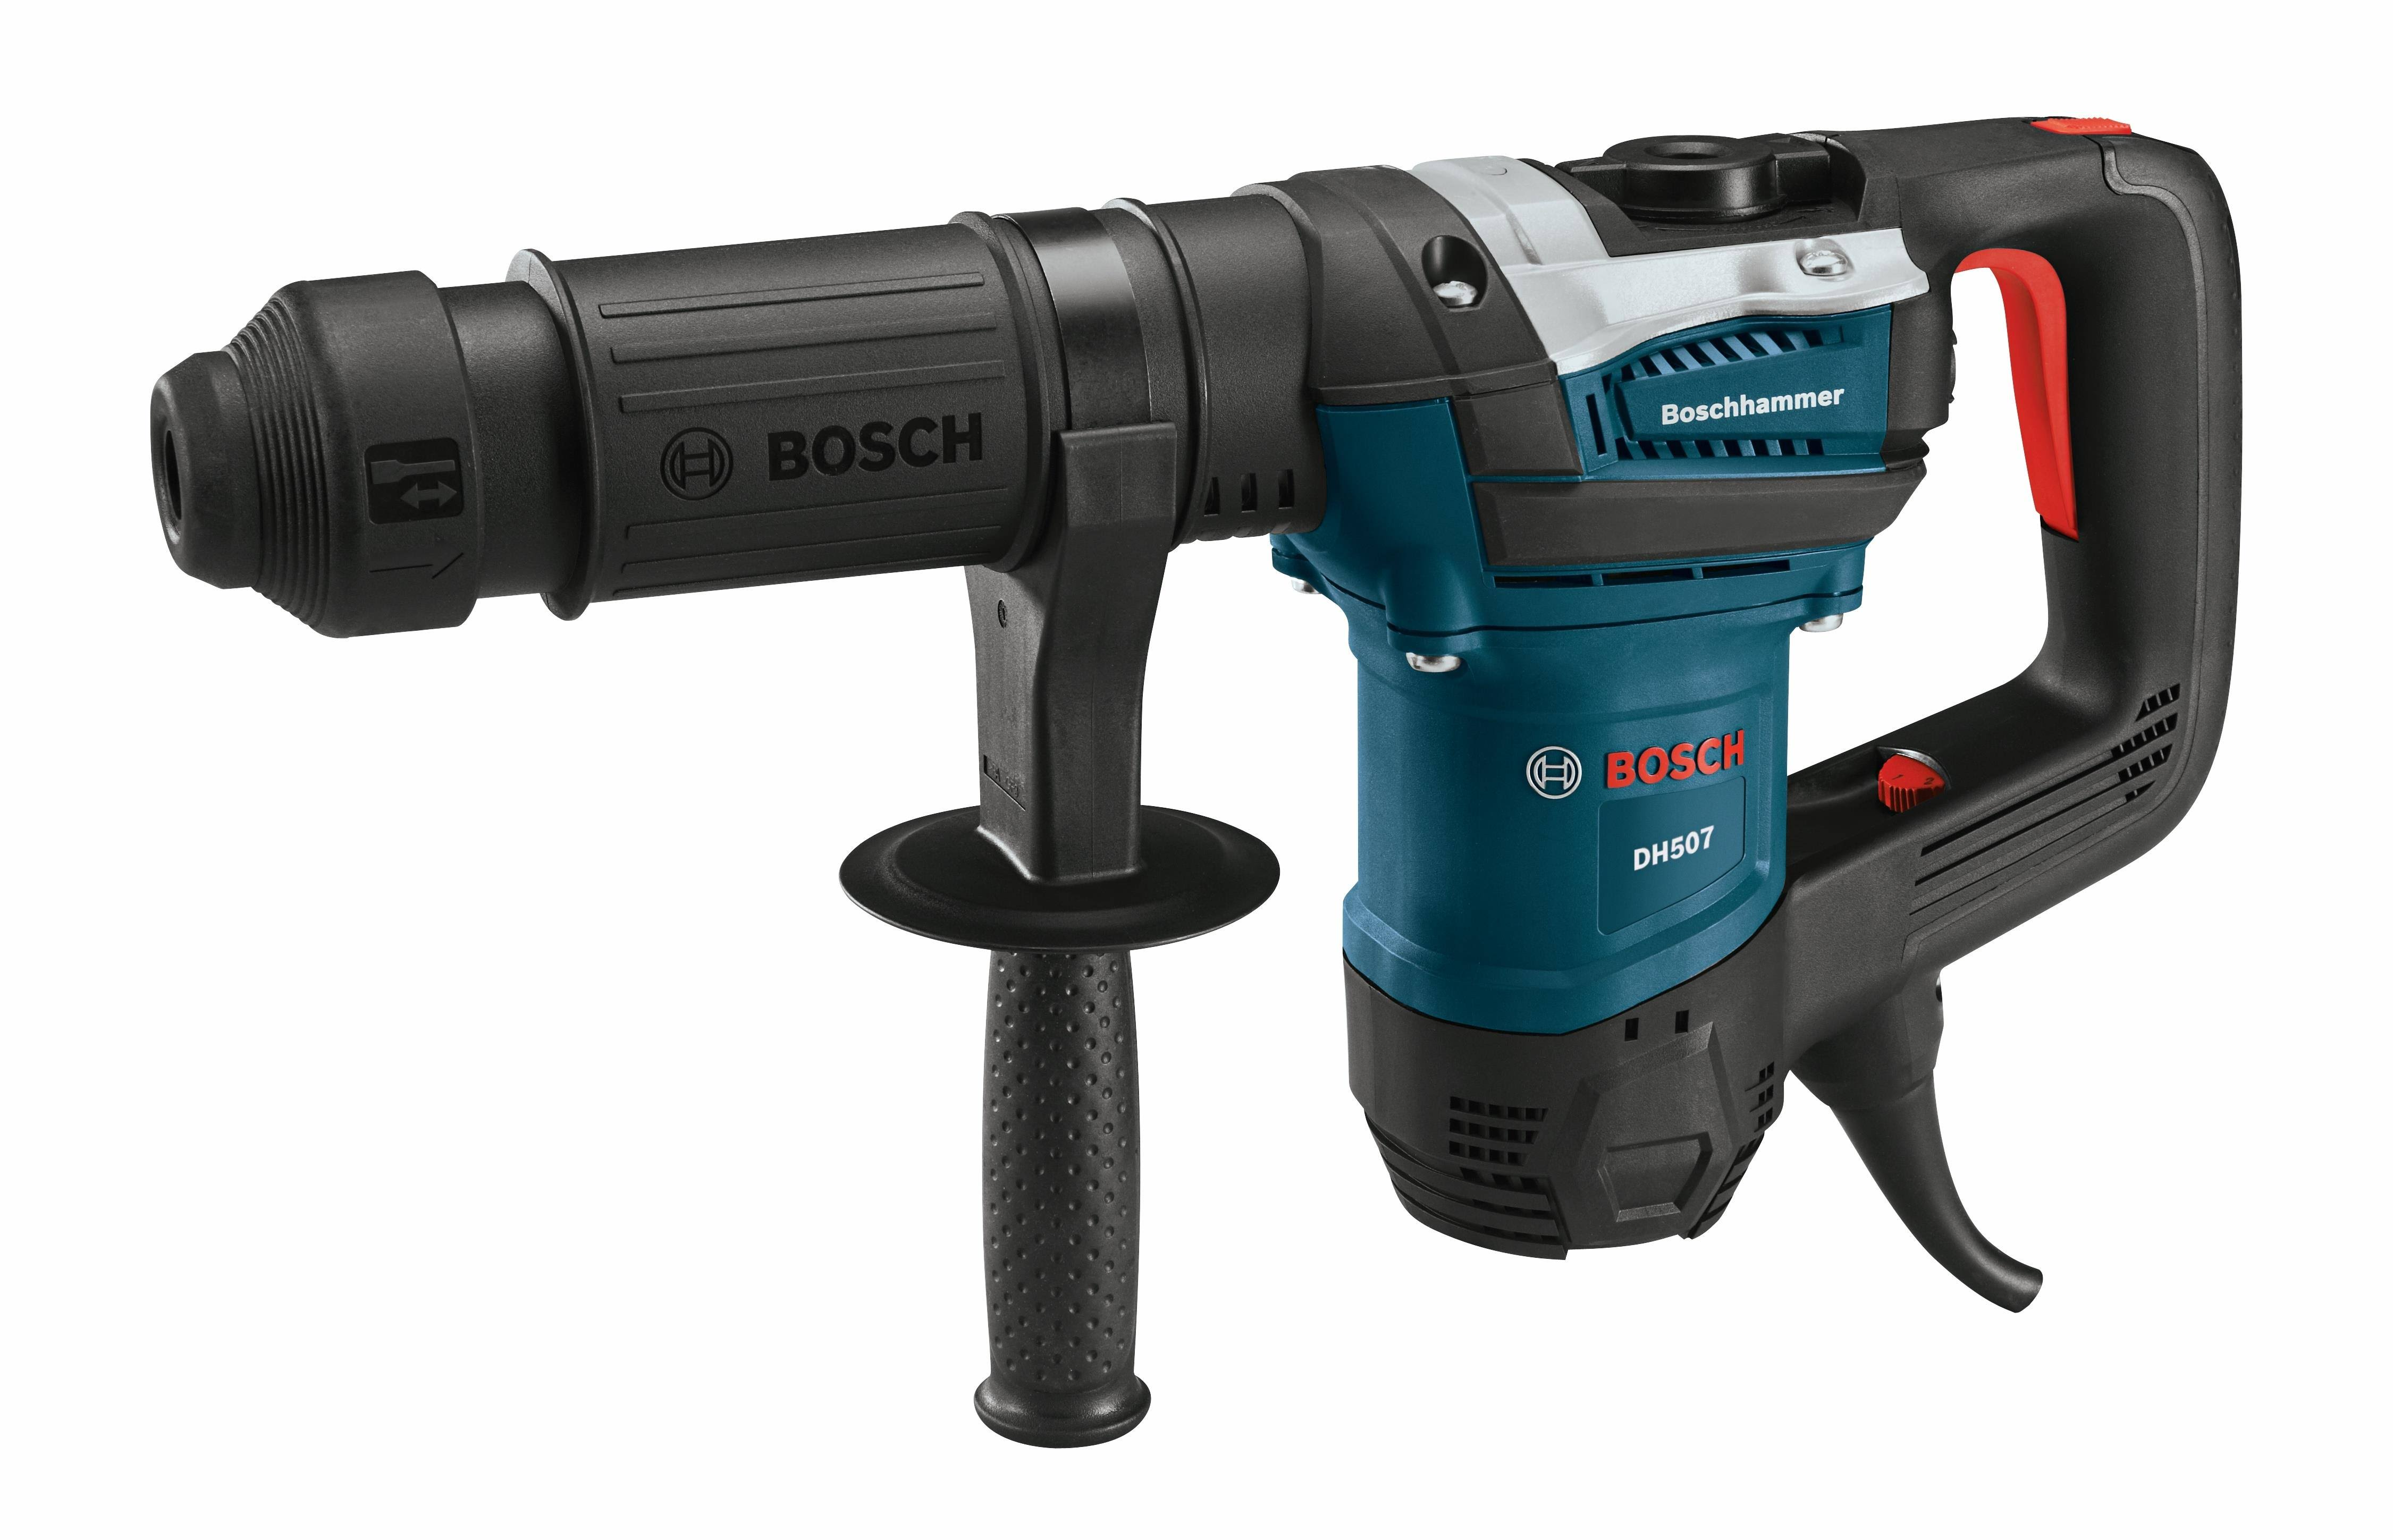 Bosch DH507 Variable Speed SDS-Max Demolition Hammer - 12 Pound, 10A